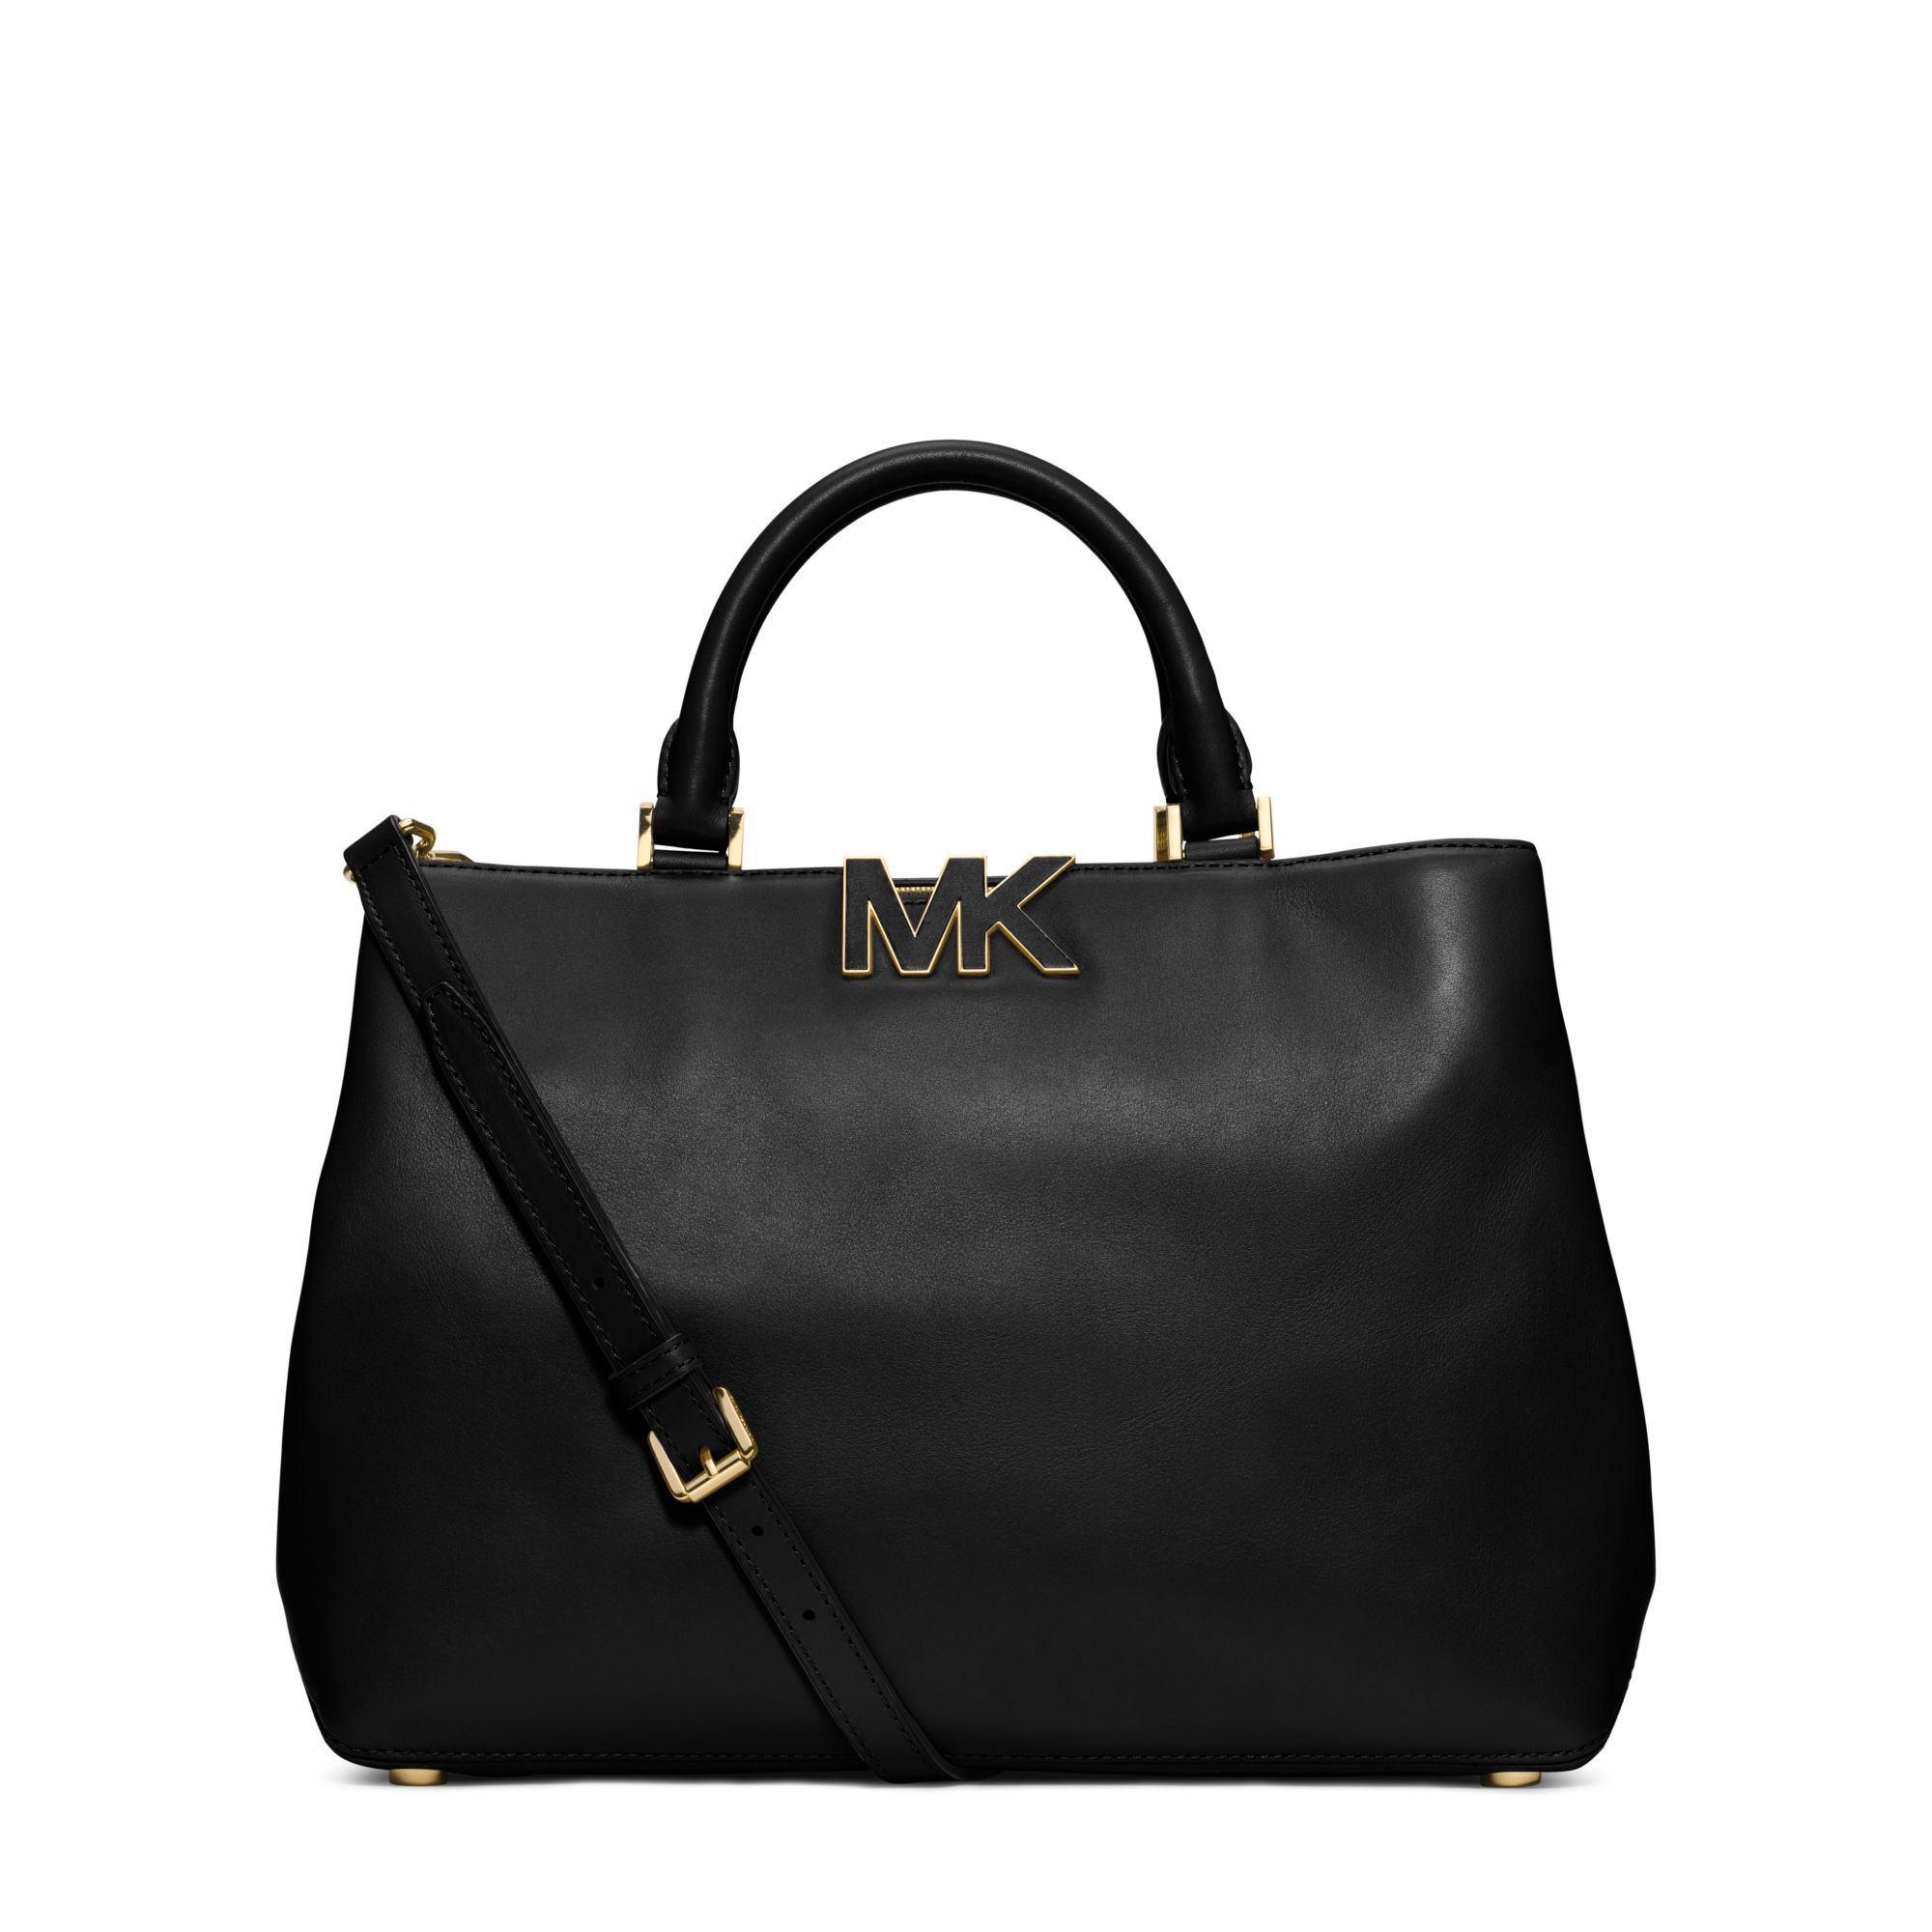 a2232f0fed8 Michael Kors Florence Leather Large Satchel in Black - Lyst